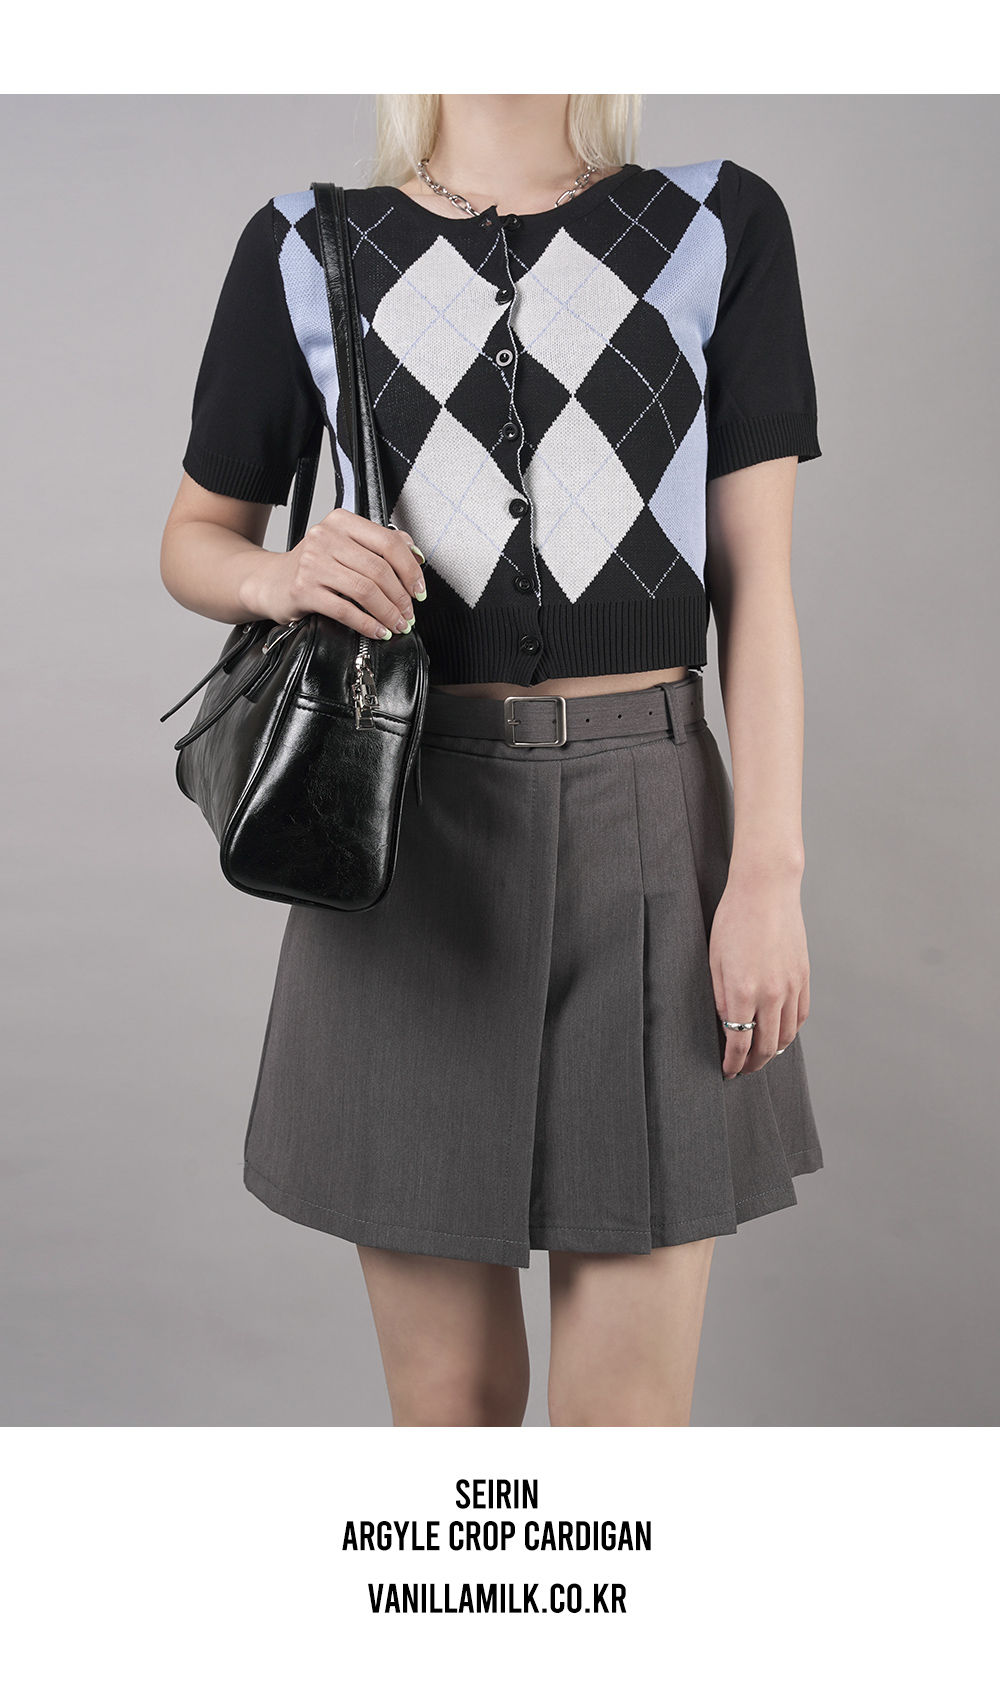 Sailin Argyle cropped short-sleeved cardigan